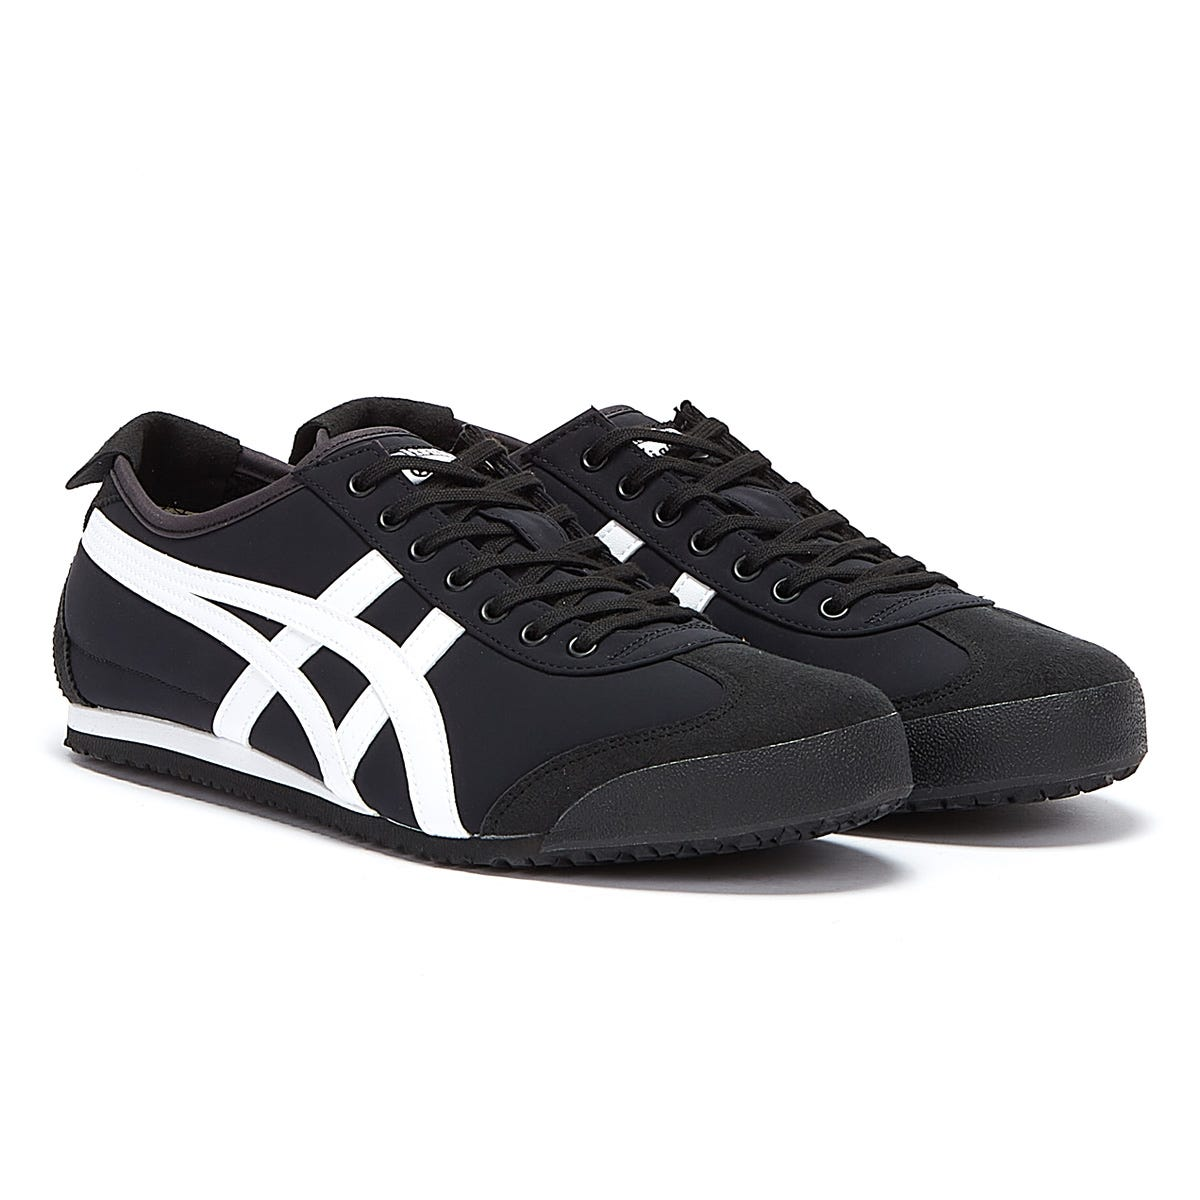 Trainers & Running Shoes Onitsuka Tiger Mexico 66 Mens Black / White Trainers